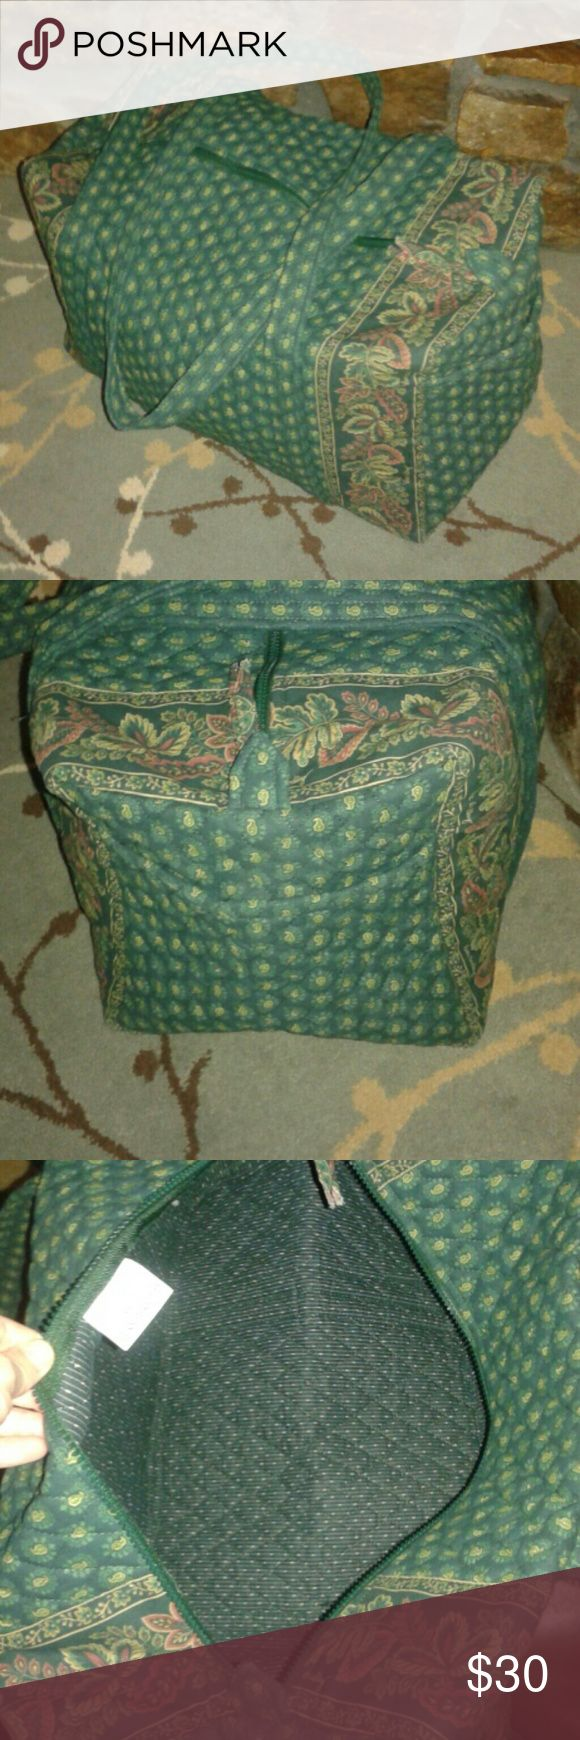 Vera Bradley extra large tote bag 19 x 10 x 11.  I don't believe this has ever been used. Like New inside and out. Large outside side pocket. Green paisley pattern. Vera Bradley Bags Totes